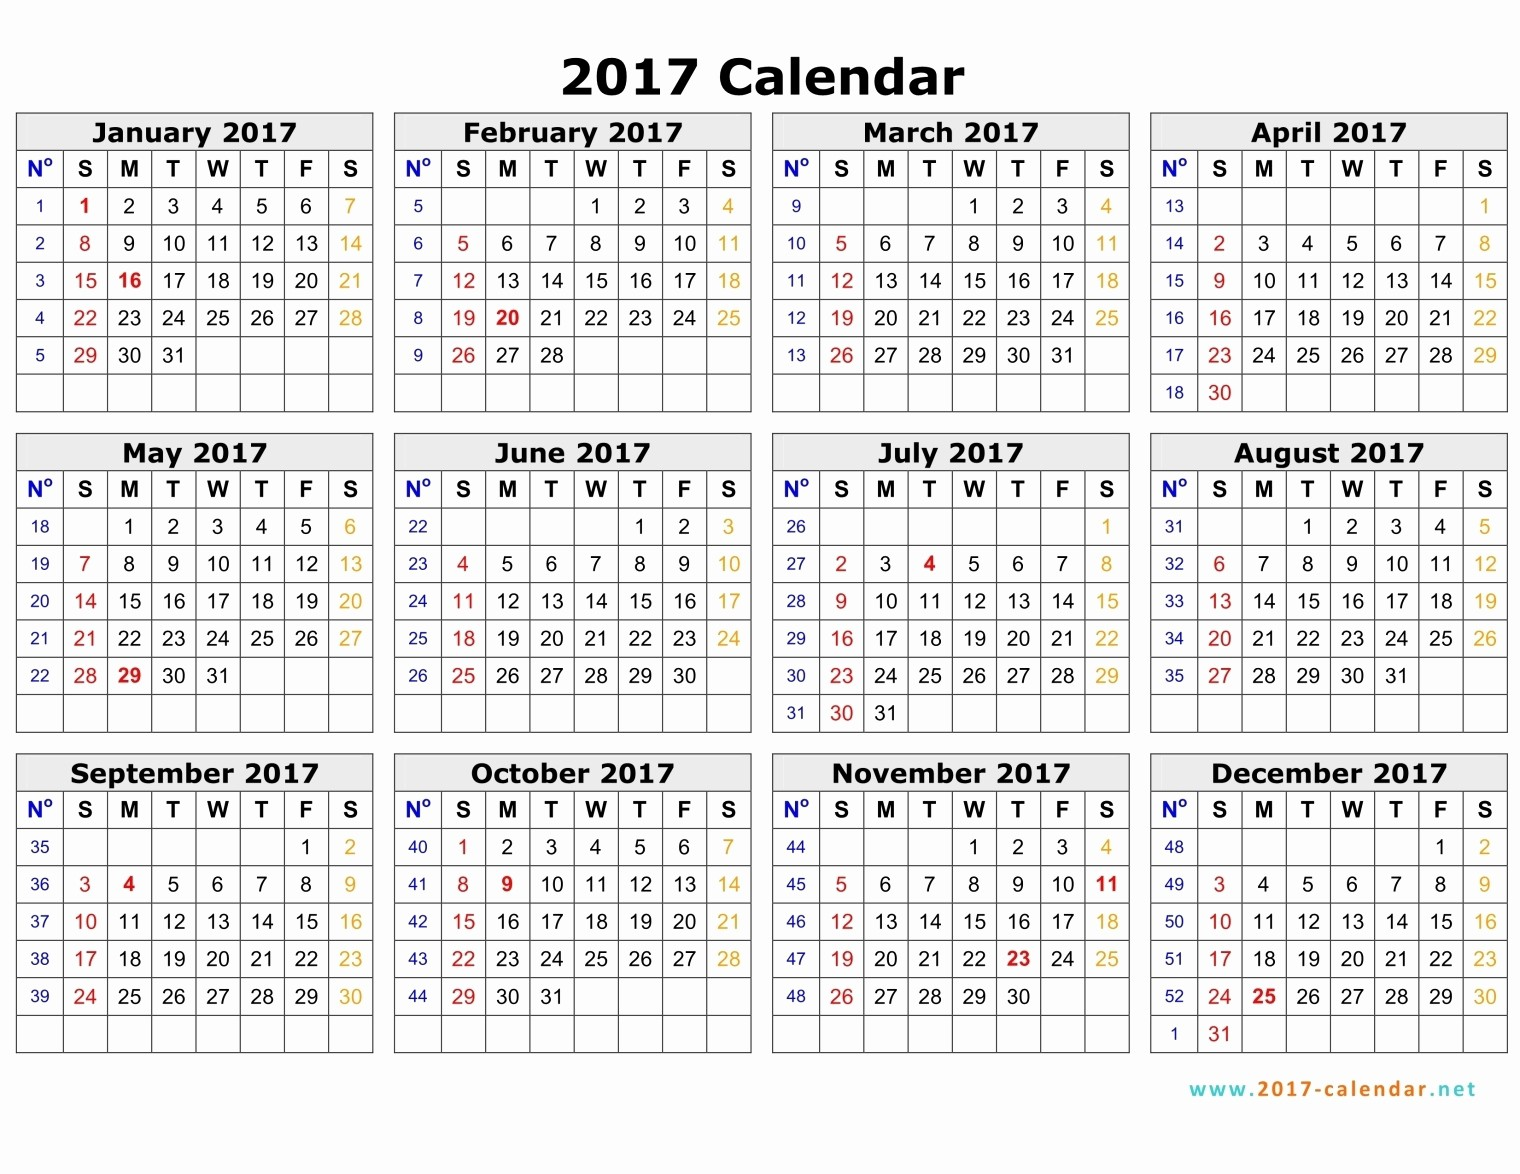 Calendar 2017 Monday to Sunday New Calendar Template December 2017 Monday Sunday